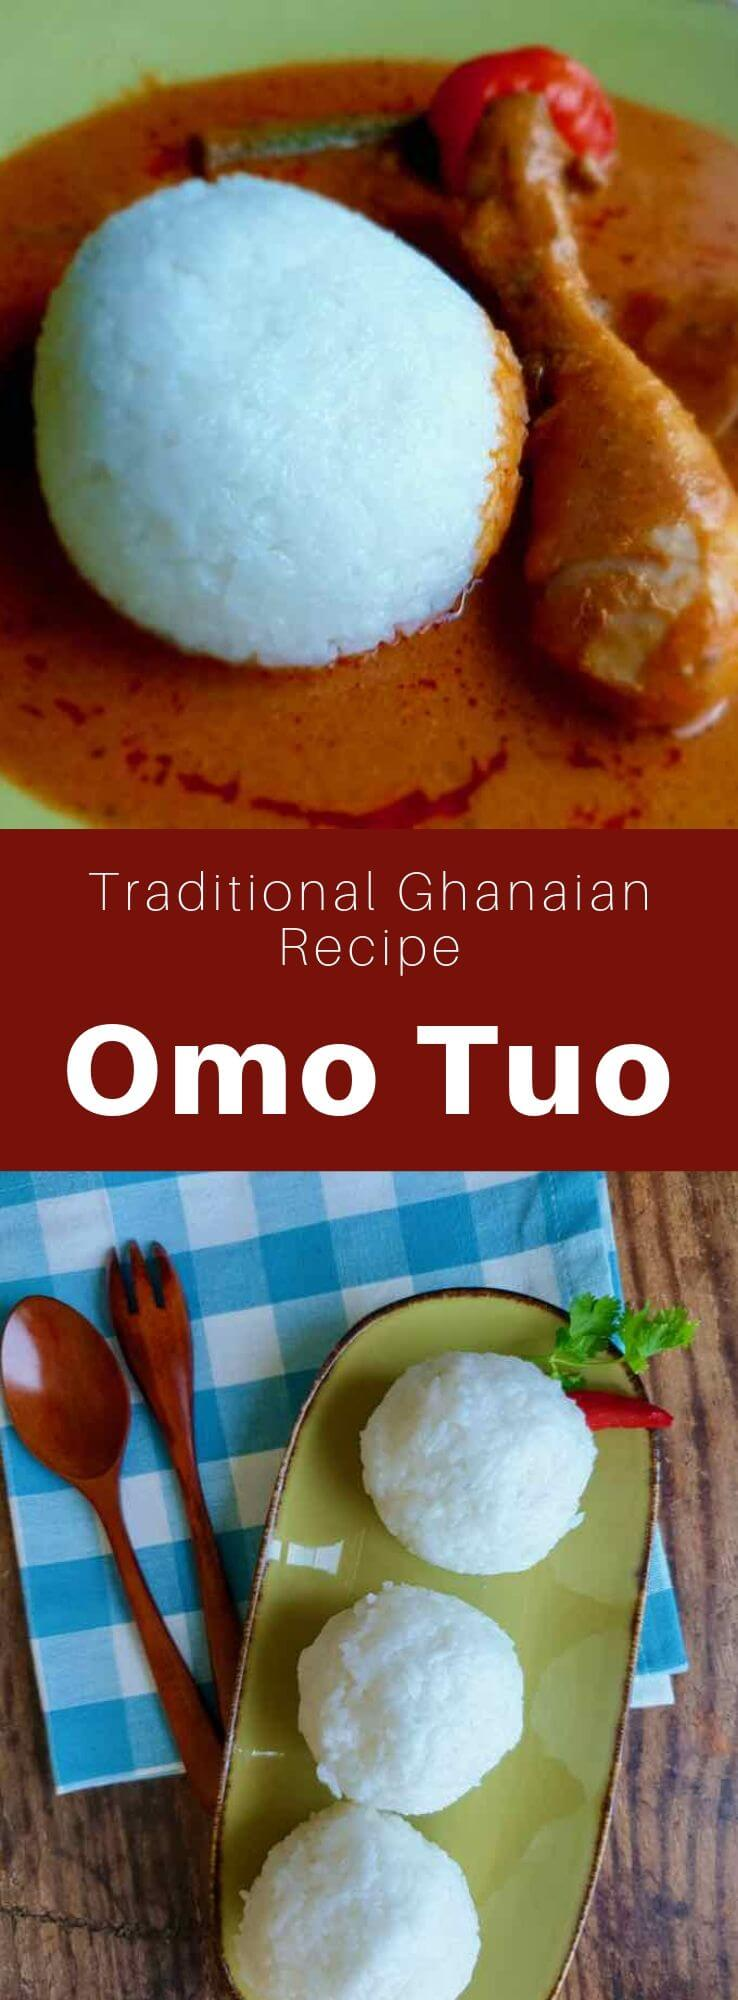 Omo tuo is a Ghanaian side dish originating from the Hausa people, made by cooking very soft rice, then pounding or rolling the rice into sticky balls. #Ghana #GhanaianCuisine #GhanaianFood #GhanaianRecipe #AfricanCuisine #AfricanFood #AfricanRecipe #WorldCuisine #196flavors